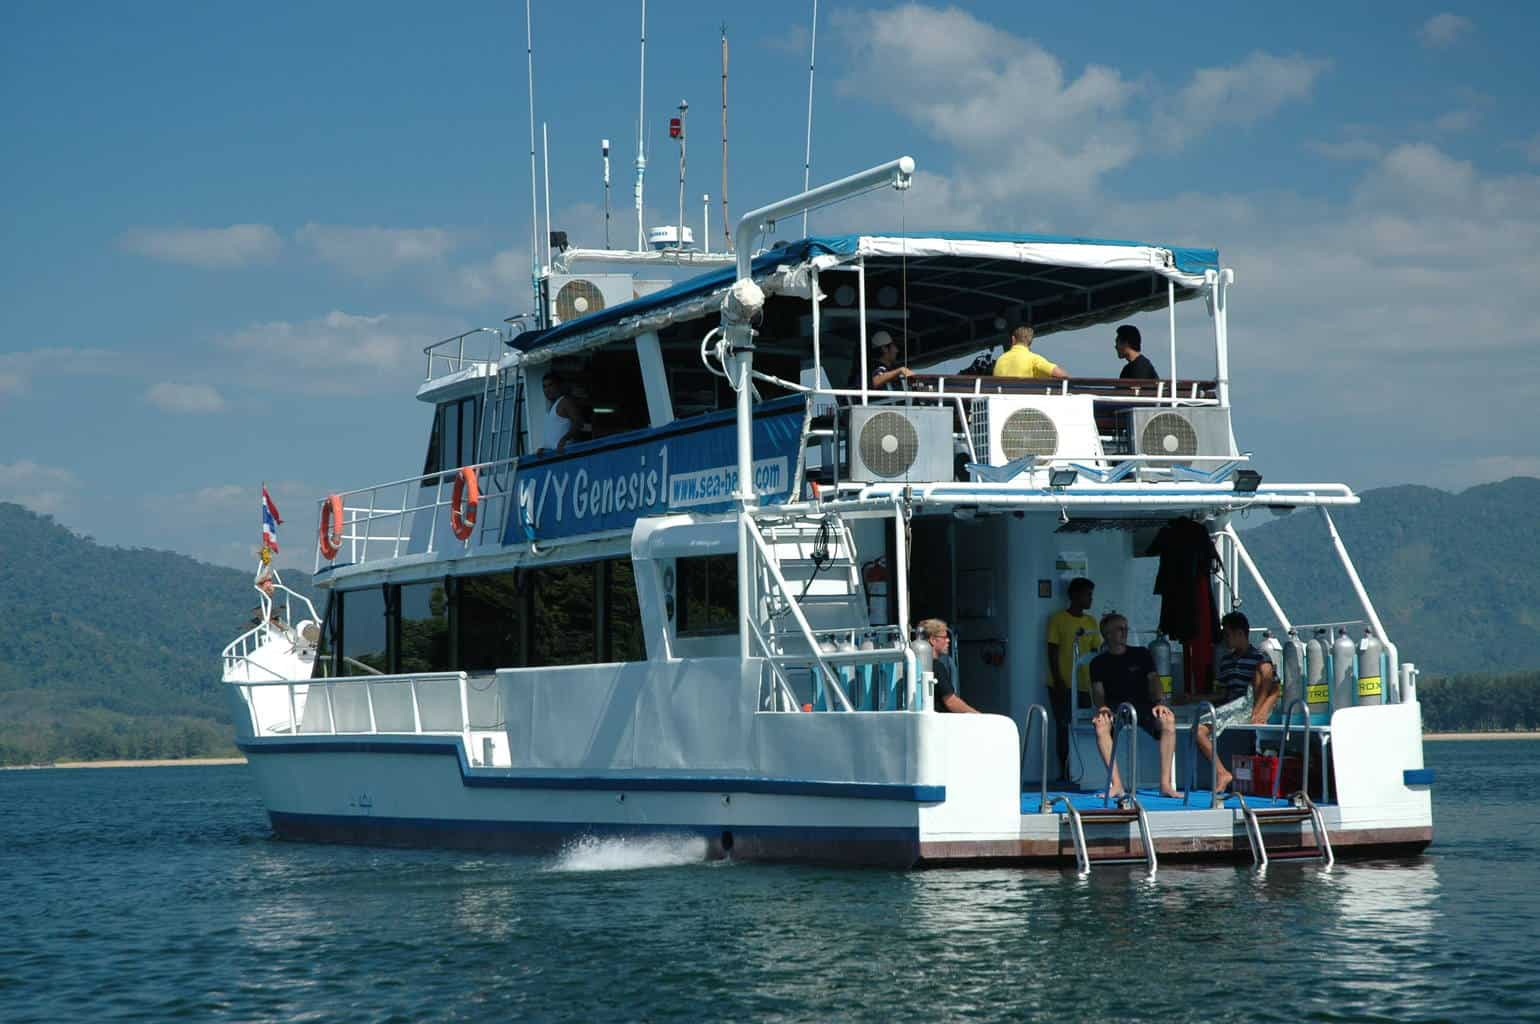 Thailand Diving Holidays MV Genesis 1 stern and side view